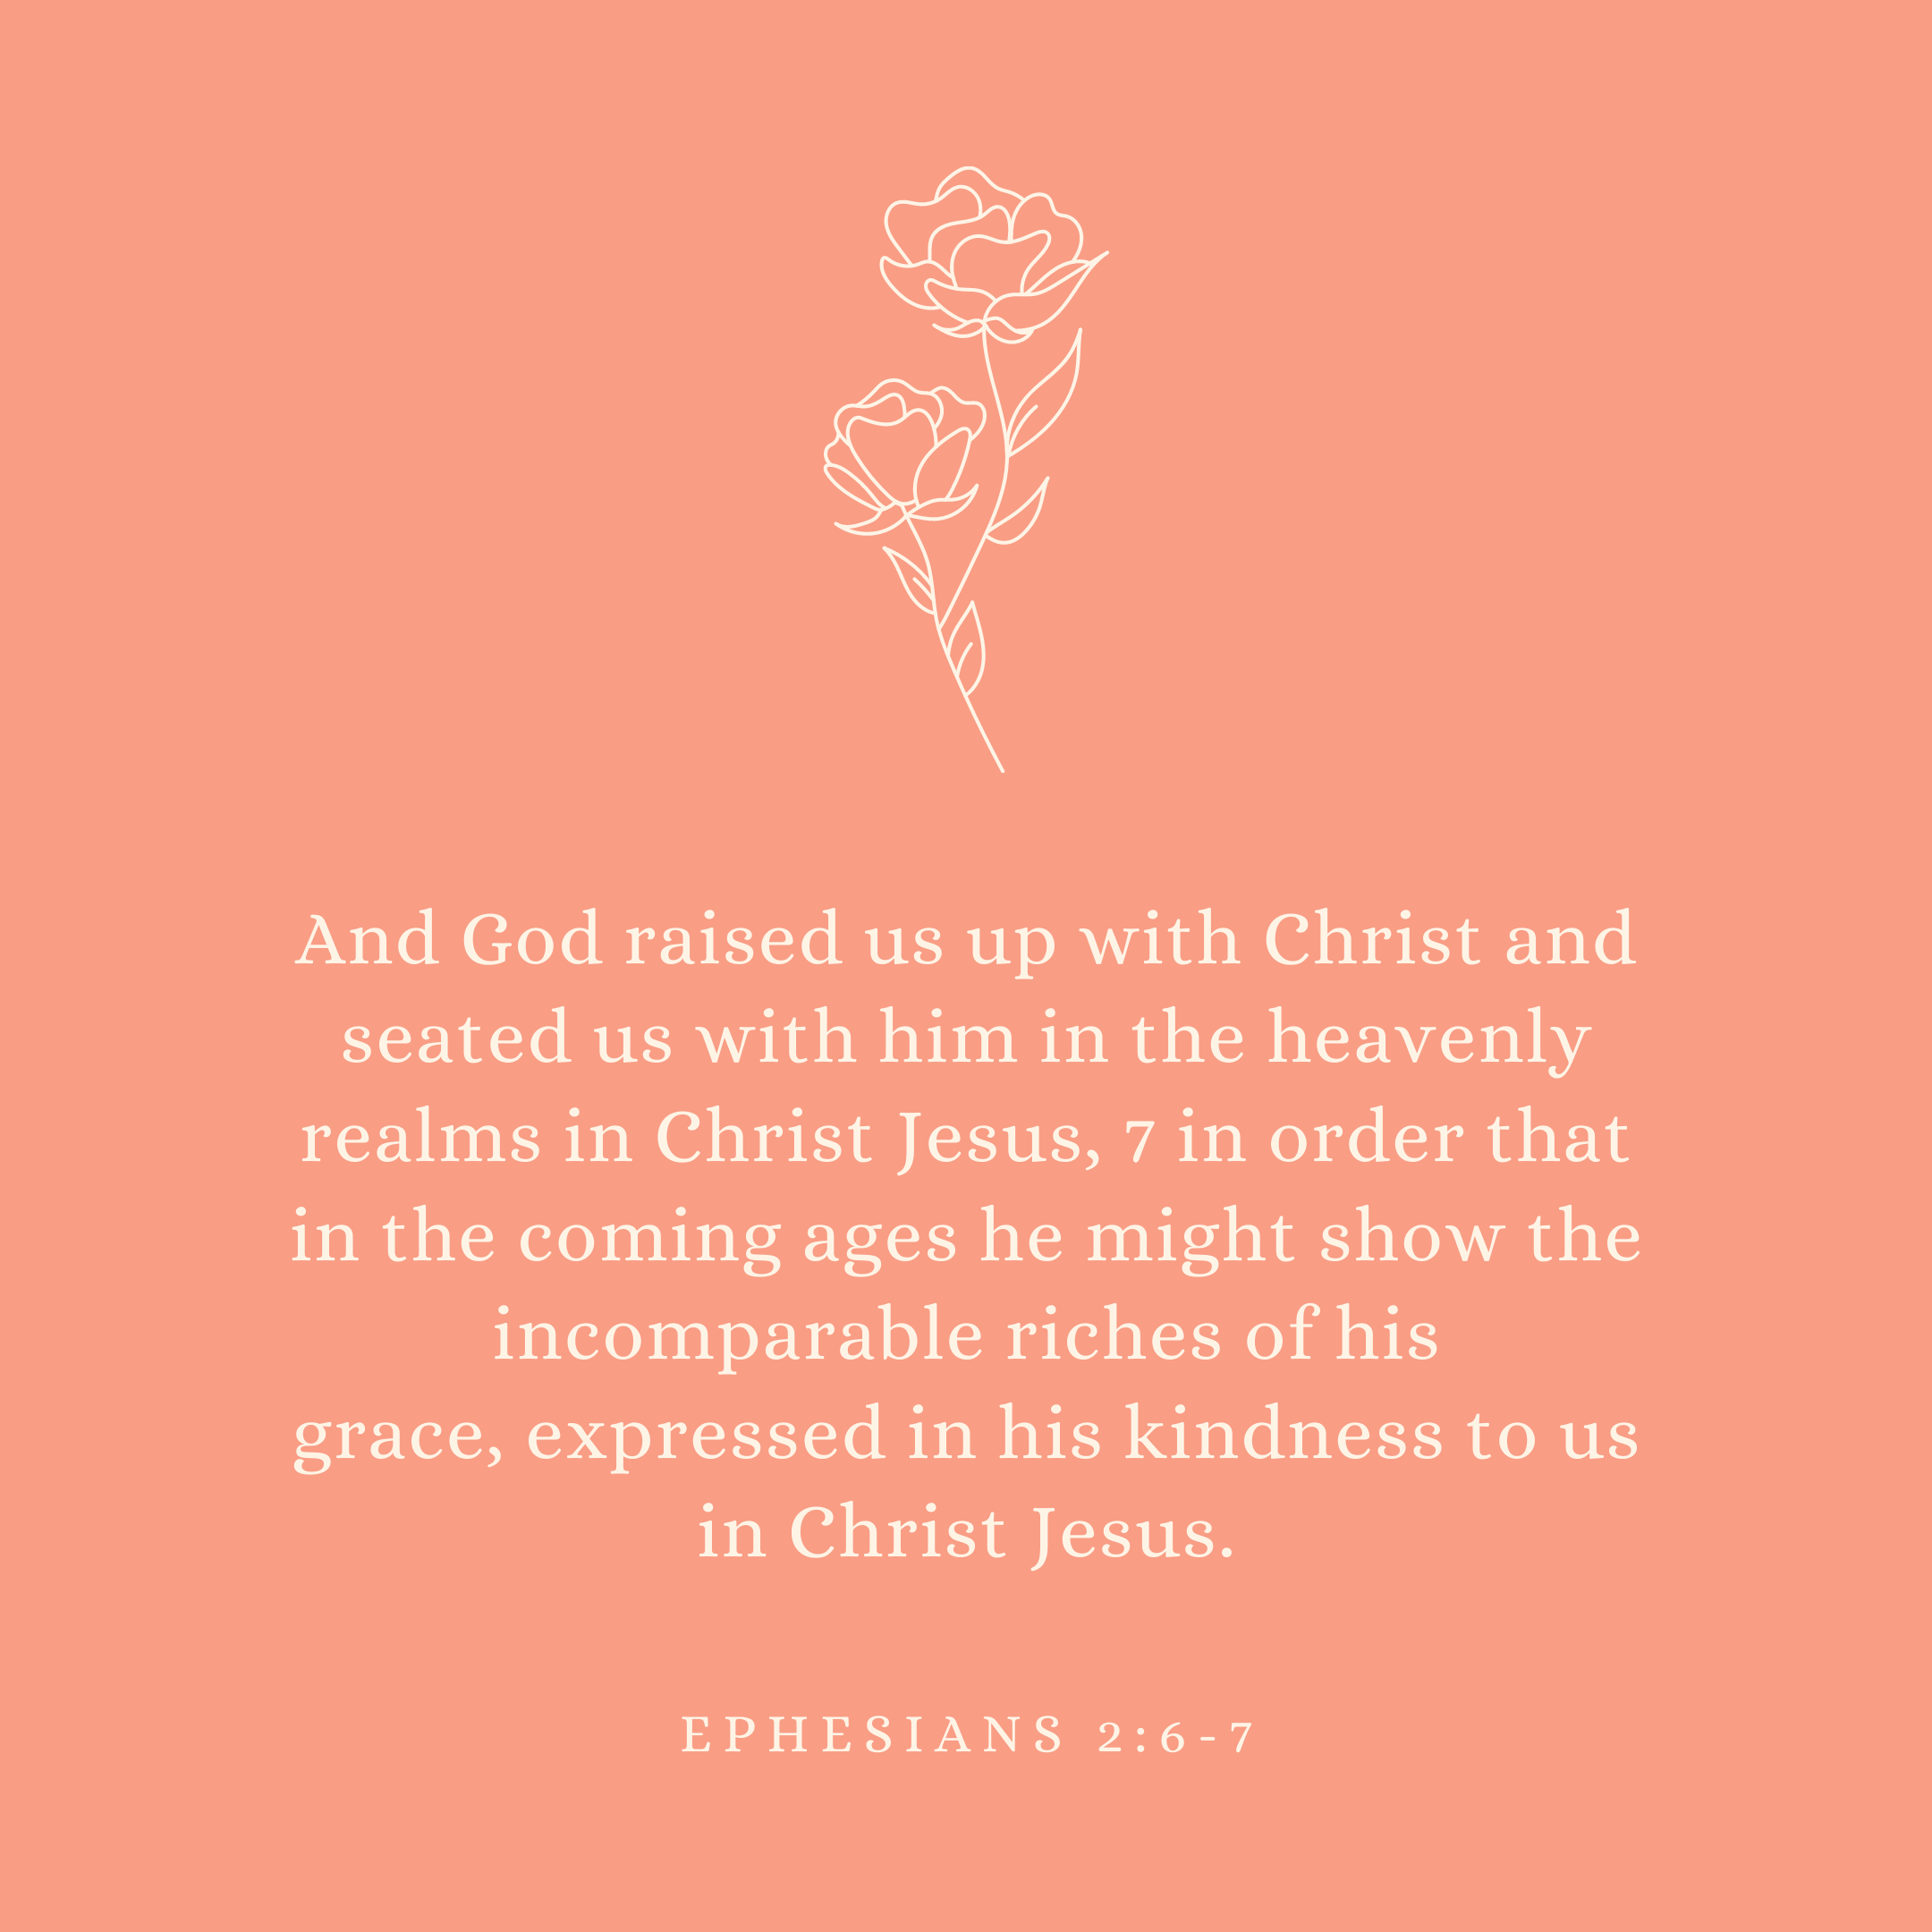 Ephesians 2:6-7 And God raised us up with Christ and seated us with him in the heavenly realms in Christ Jesus, 7 in order that in the coming ages he might show the incomparable riches of his grace, expressed in his kindness to us in Christ Jesus.